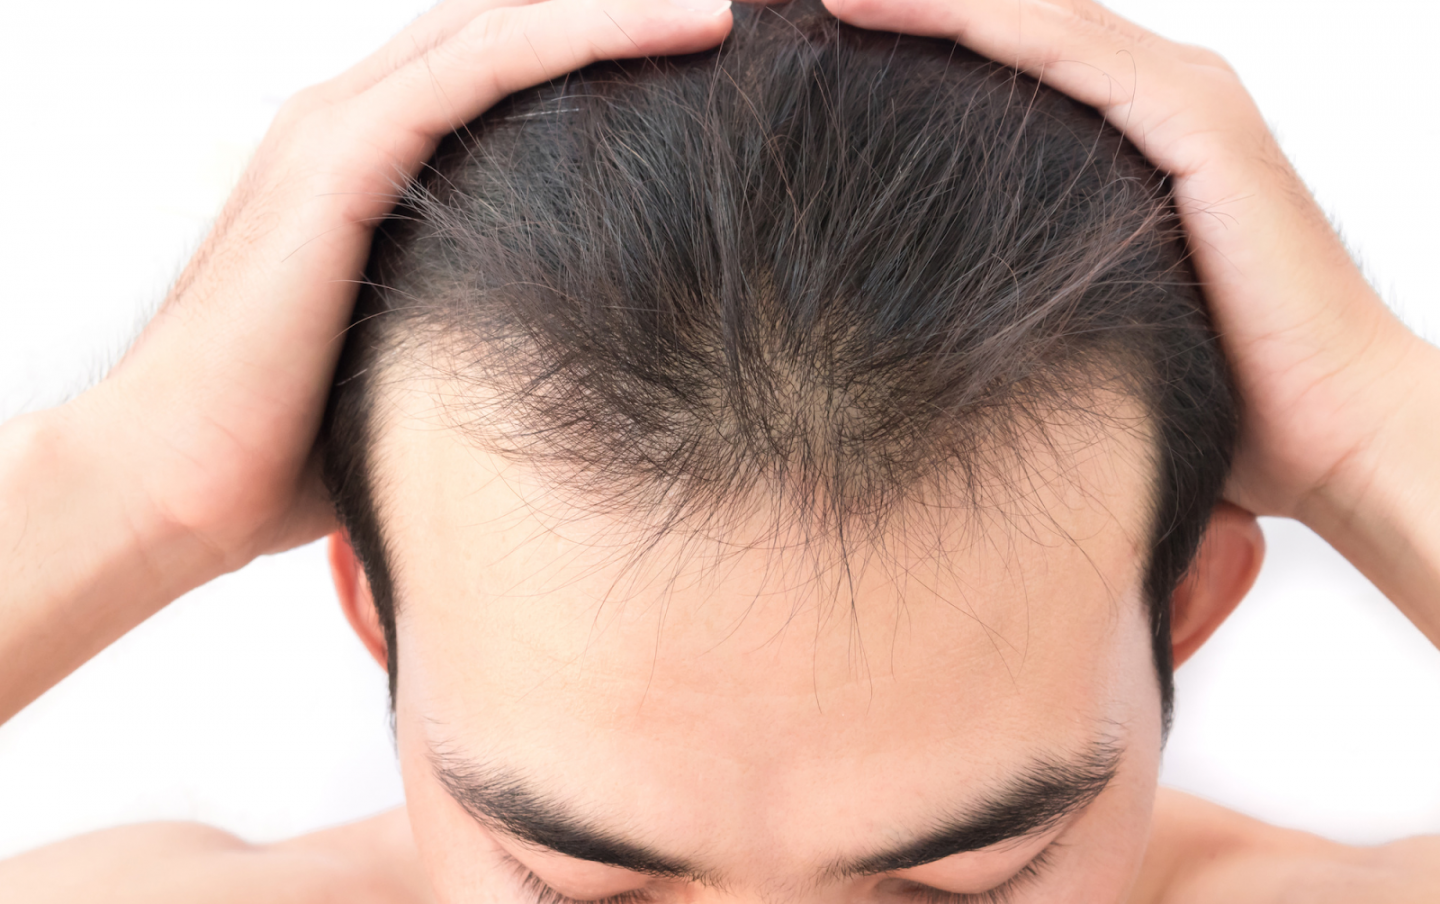 WHAT TO CONSIDER WHEN CHOOSING A HAIR TRANSPLANT DOCTOR